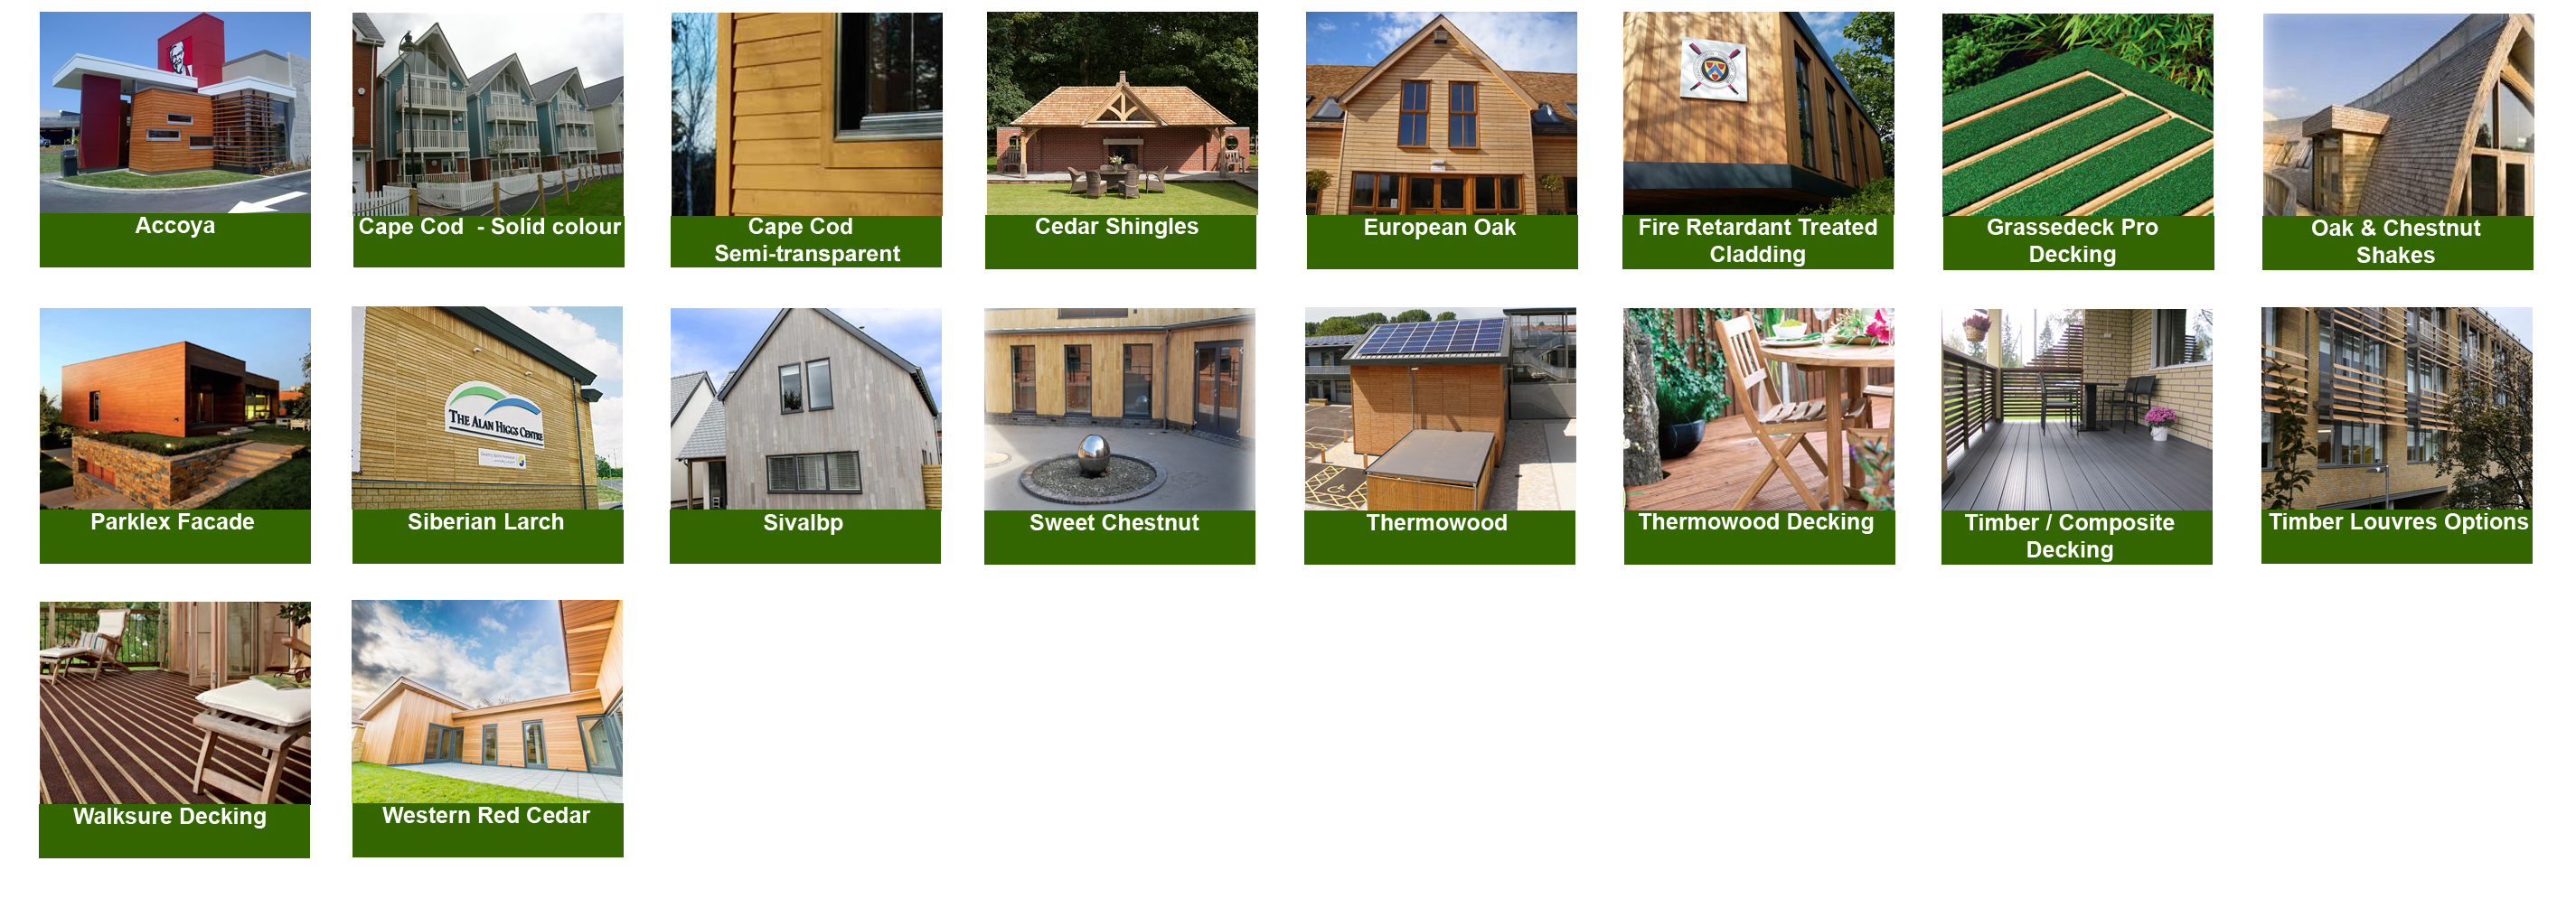 Timber Cladding From Vincent Timber Cladding Division